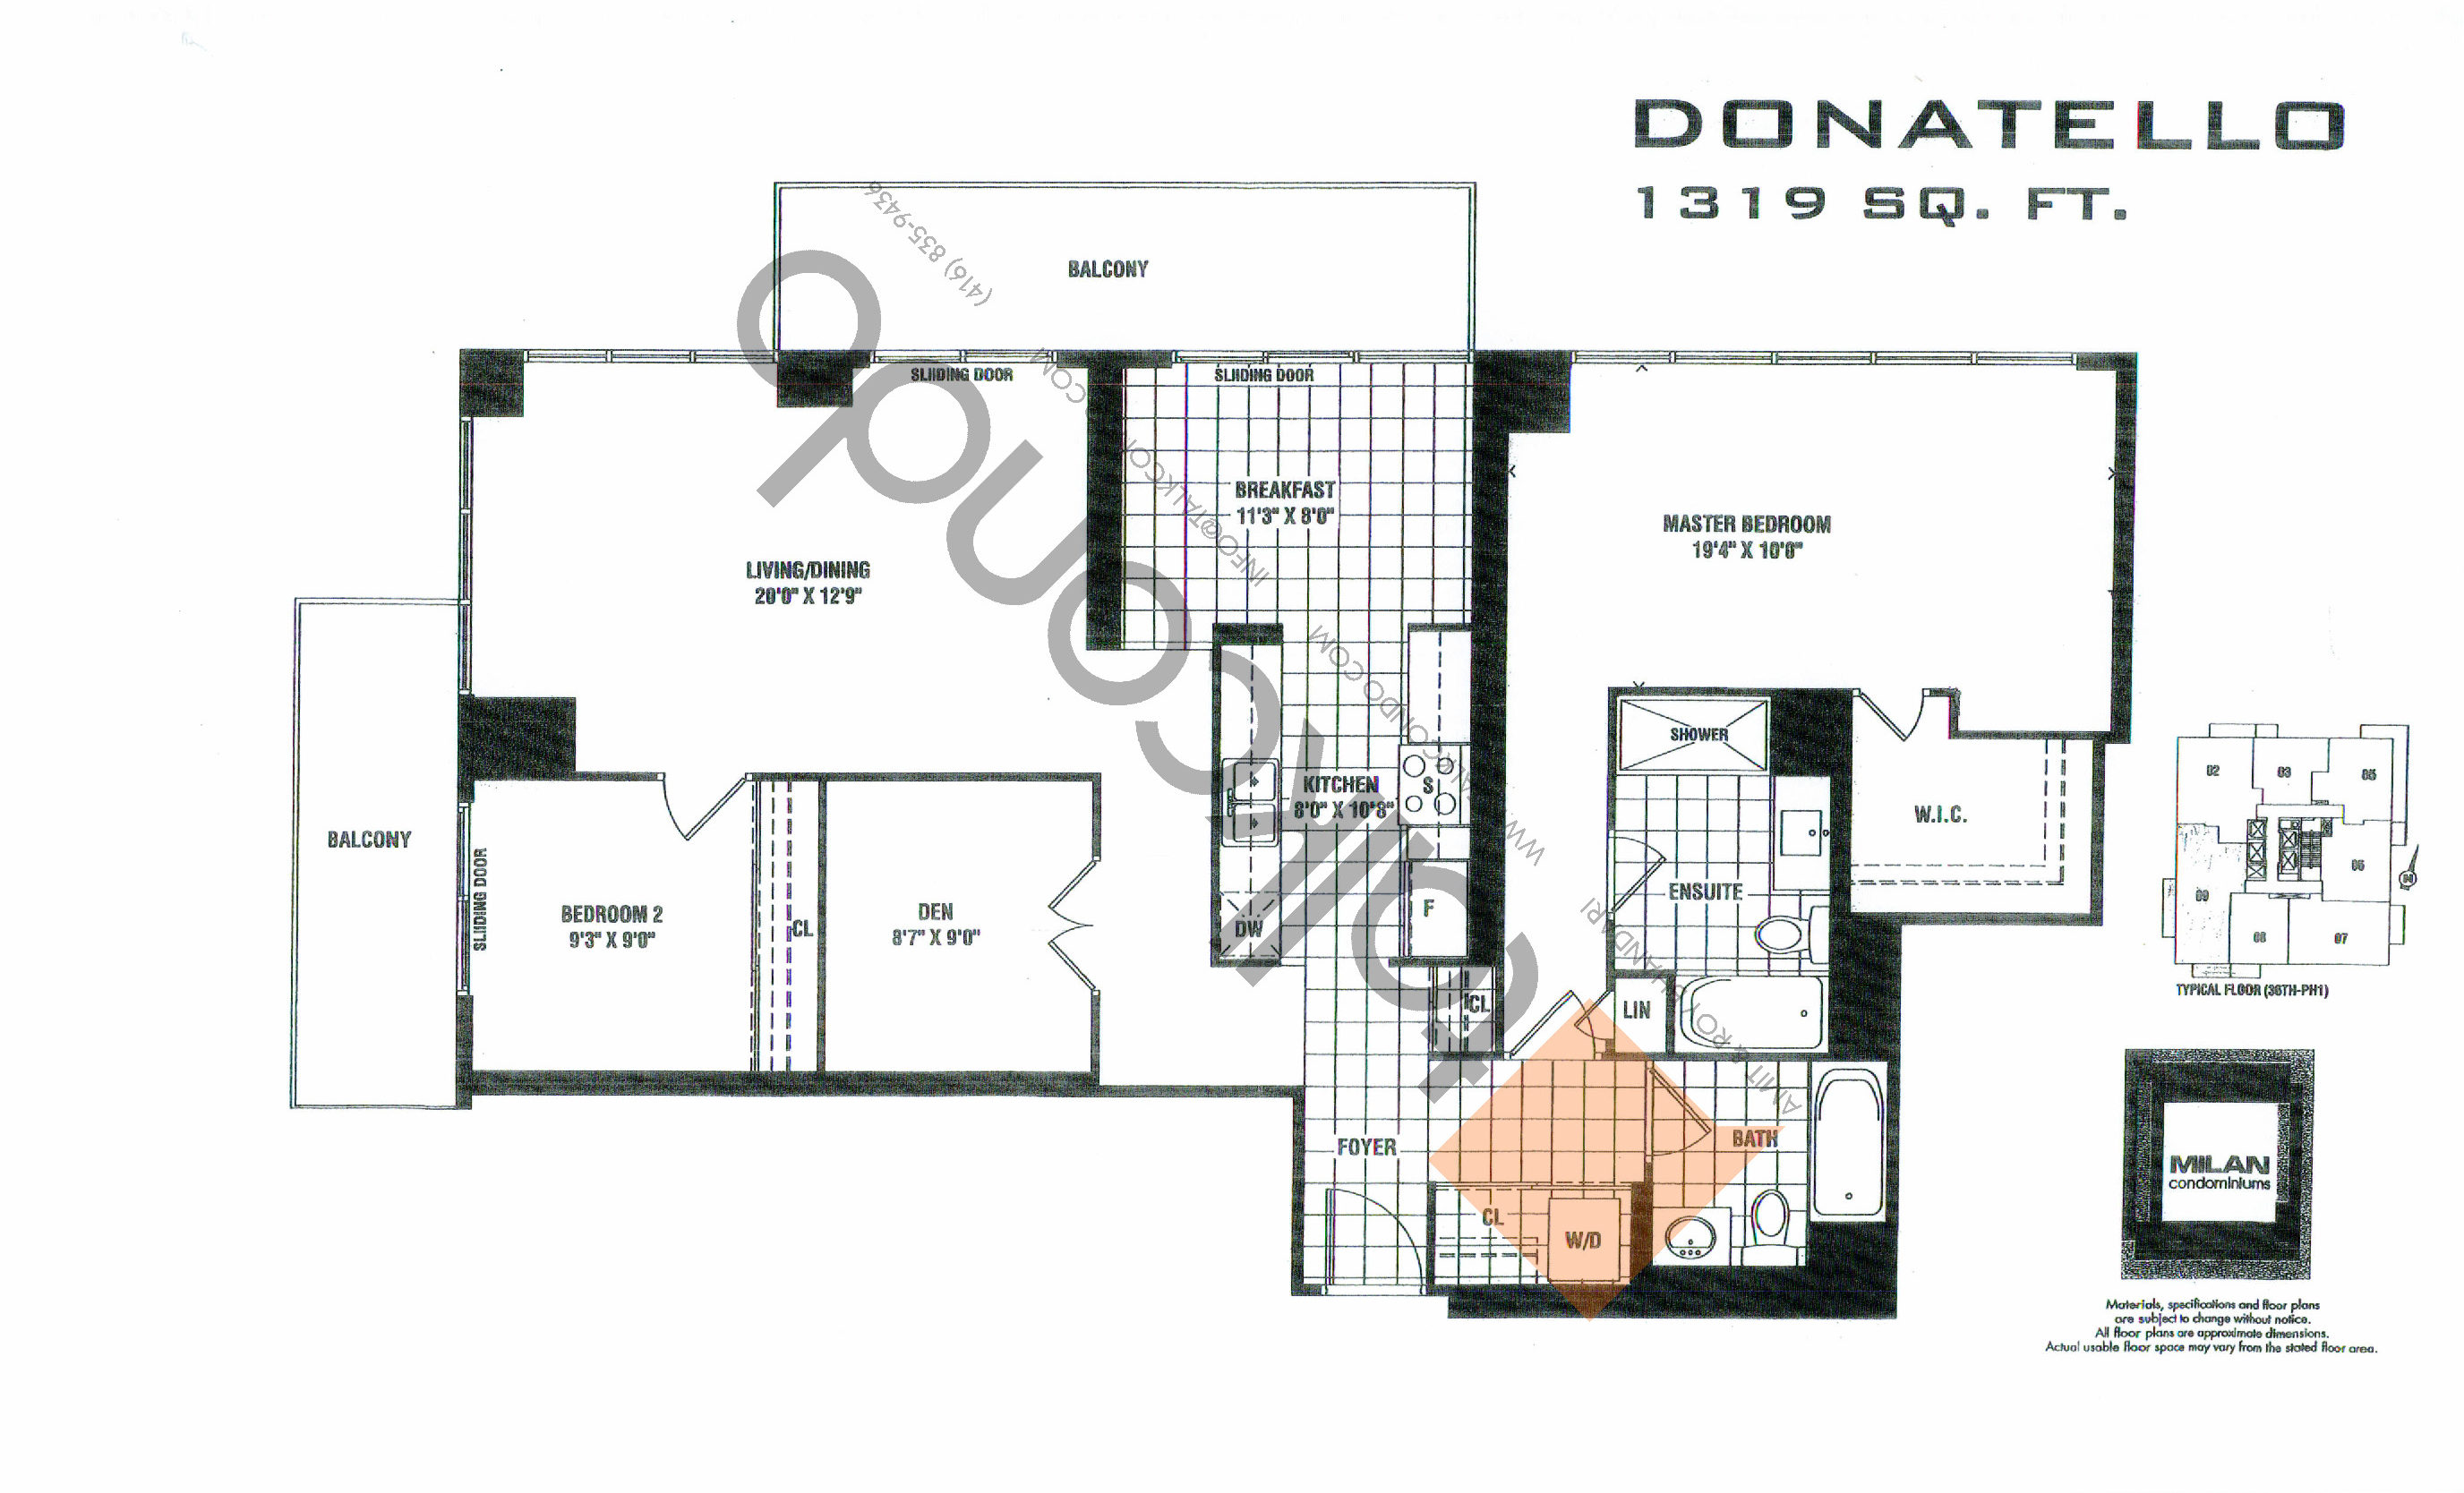 Donatello Floor Plan at Milan Condos - 1319 sq.ft